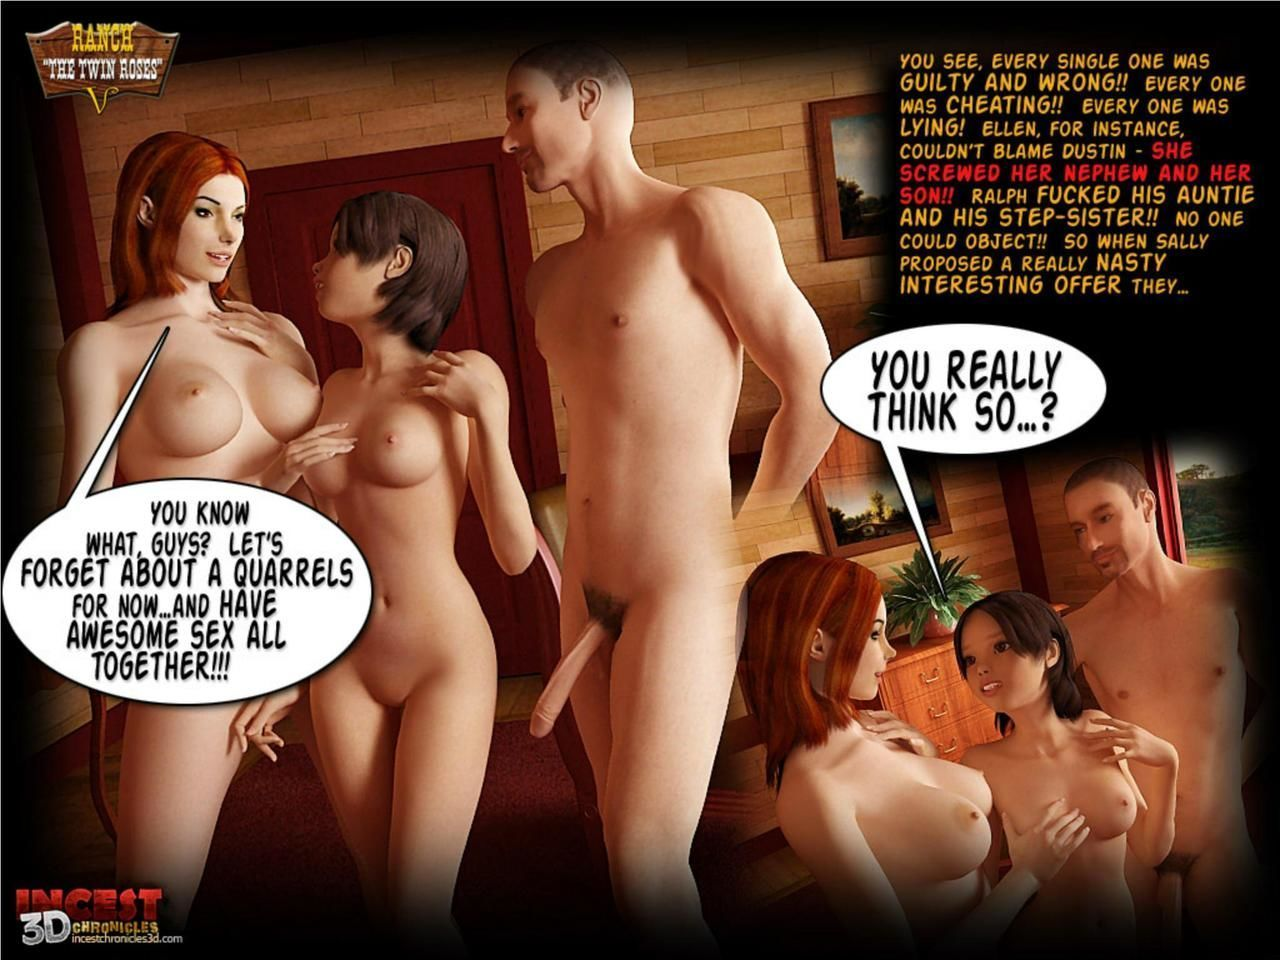 Ranch - The Twin Roses 1-5 - part 17